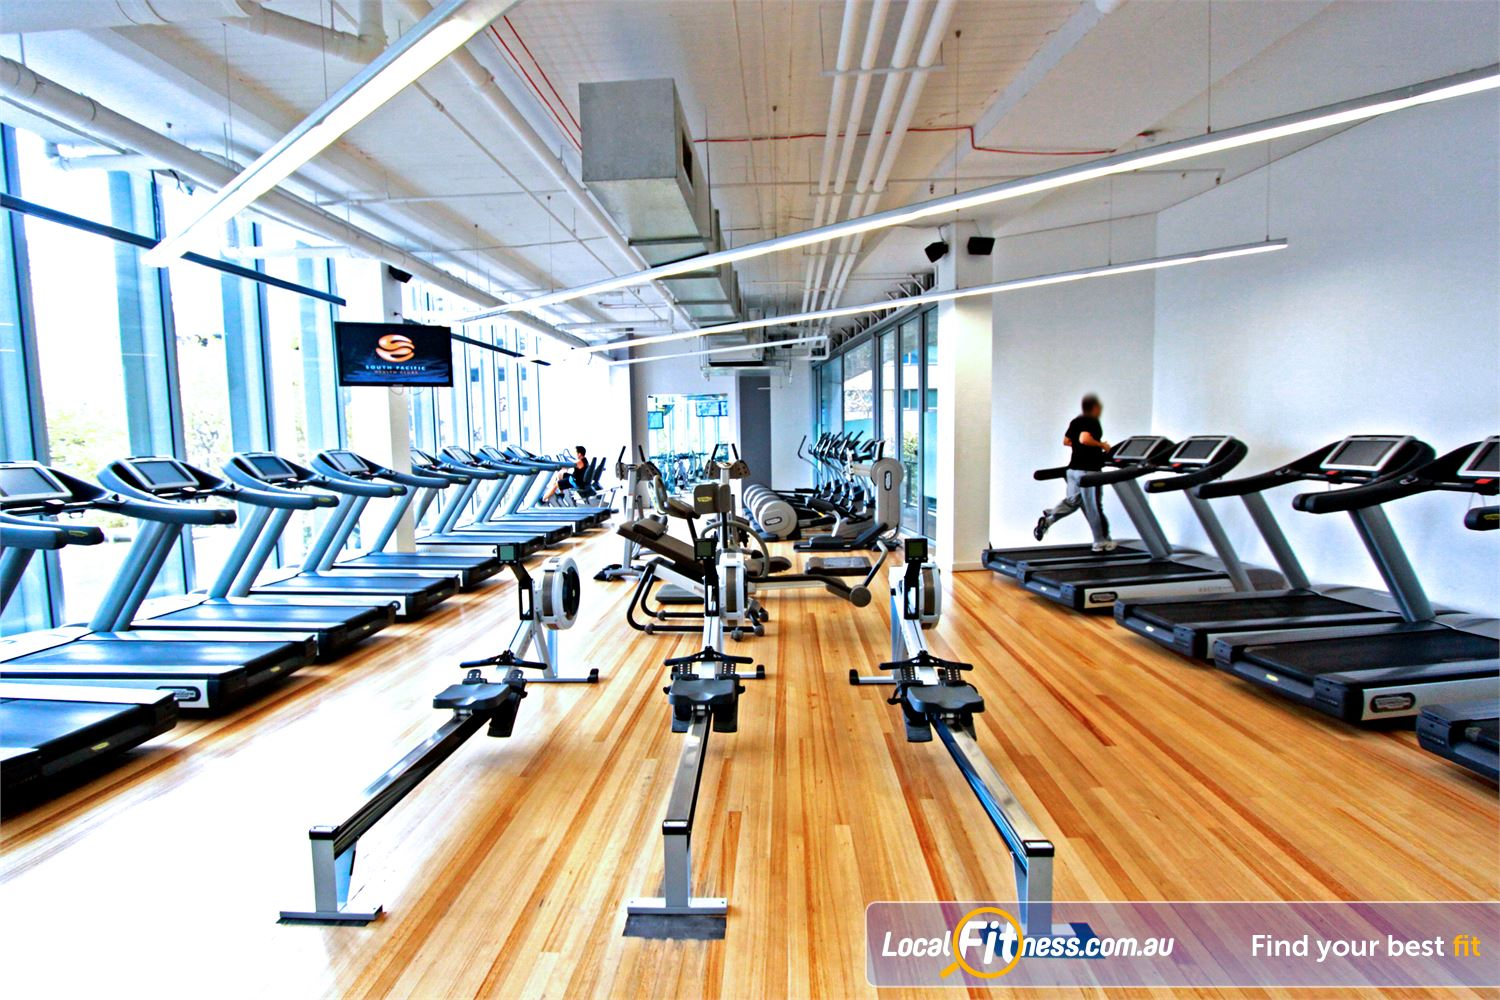 South Pacific Health Clubs Melbourne Our Melbourne gym provides a professional and unmatched service.